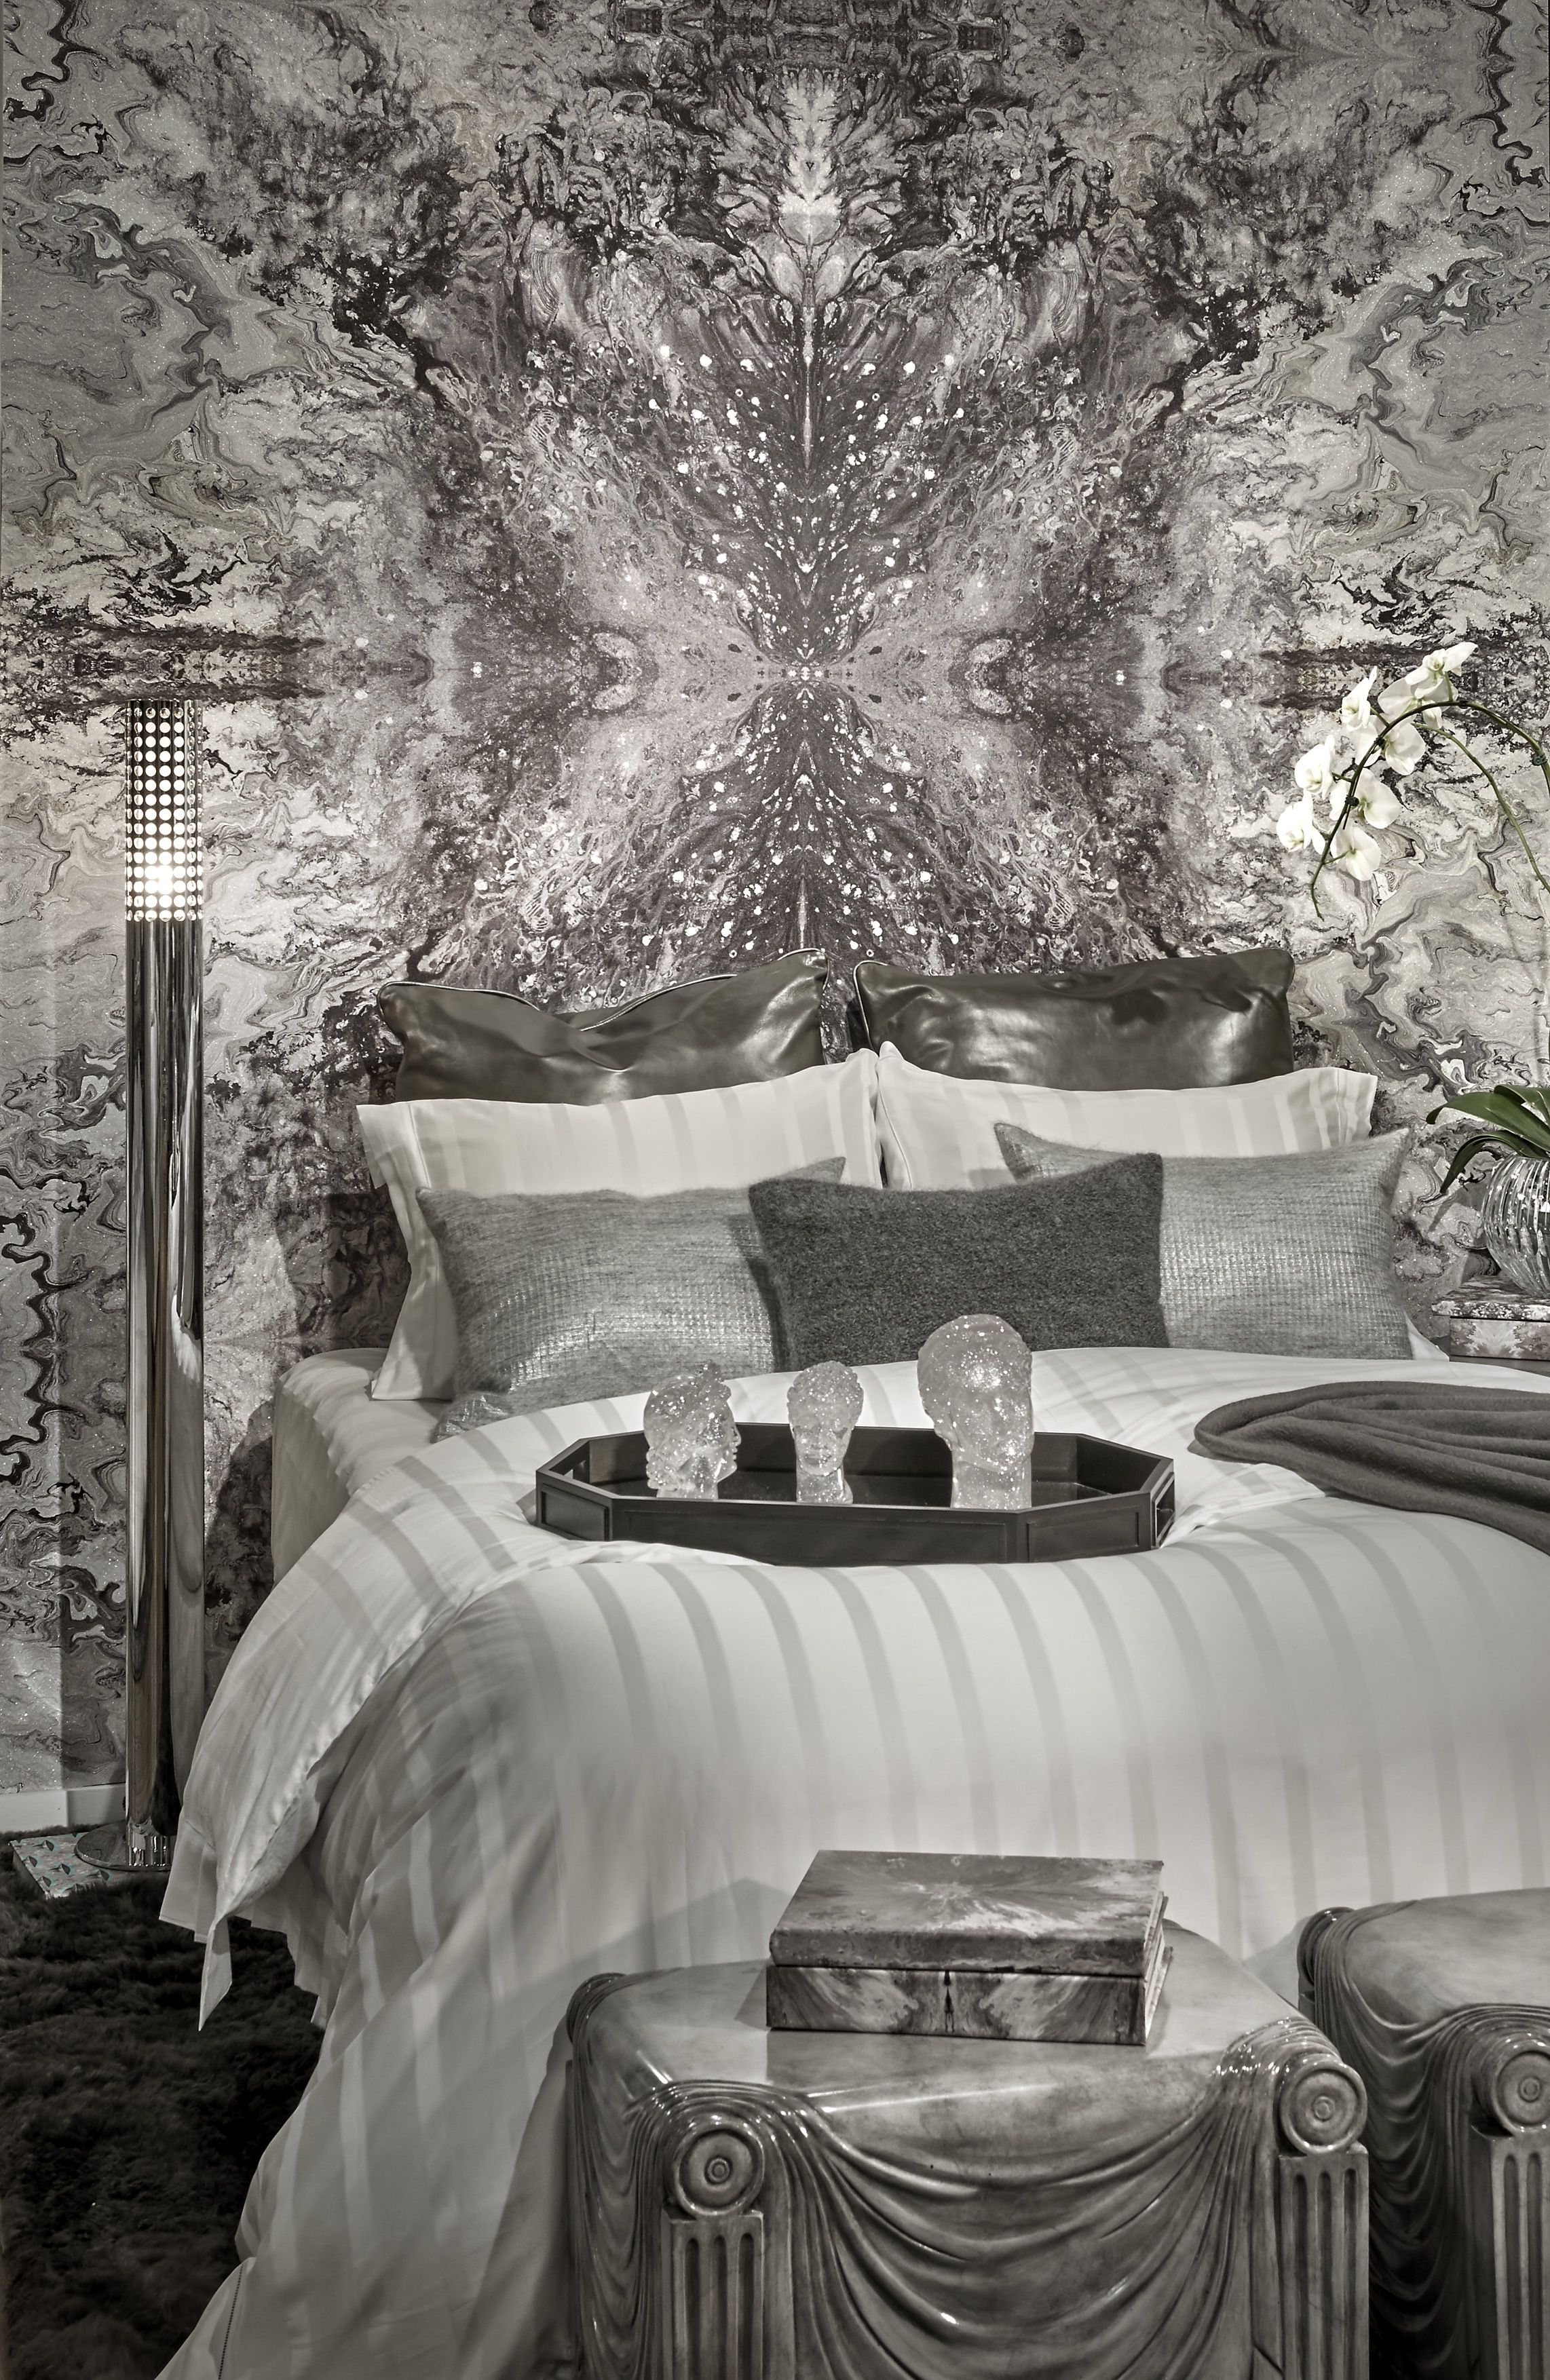 Wall coverings by Cathy Bruni Norris vignette located a Chicago Luxury Beds Dreaming of Design 2017.